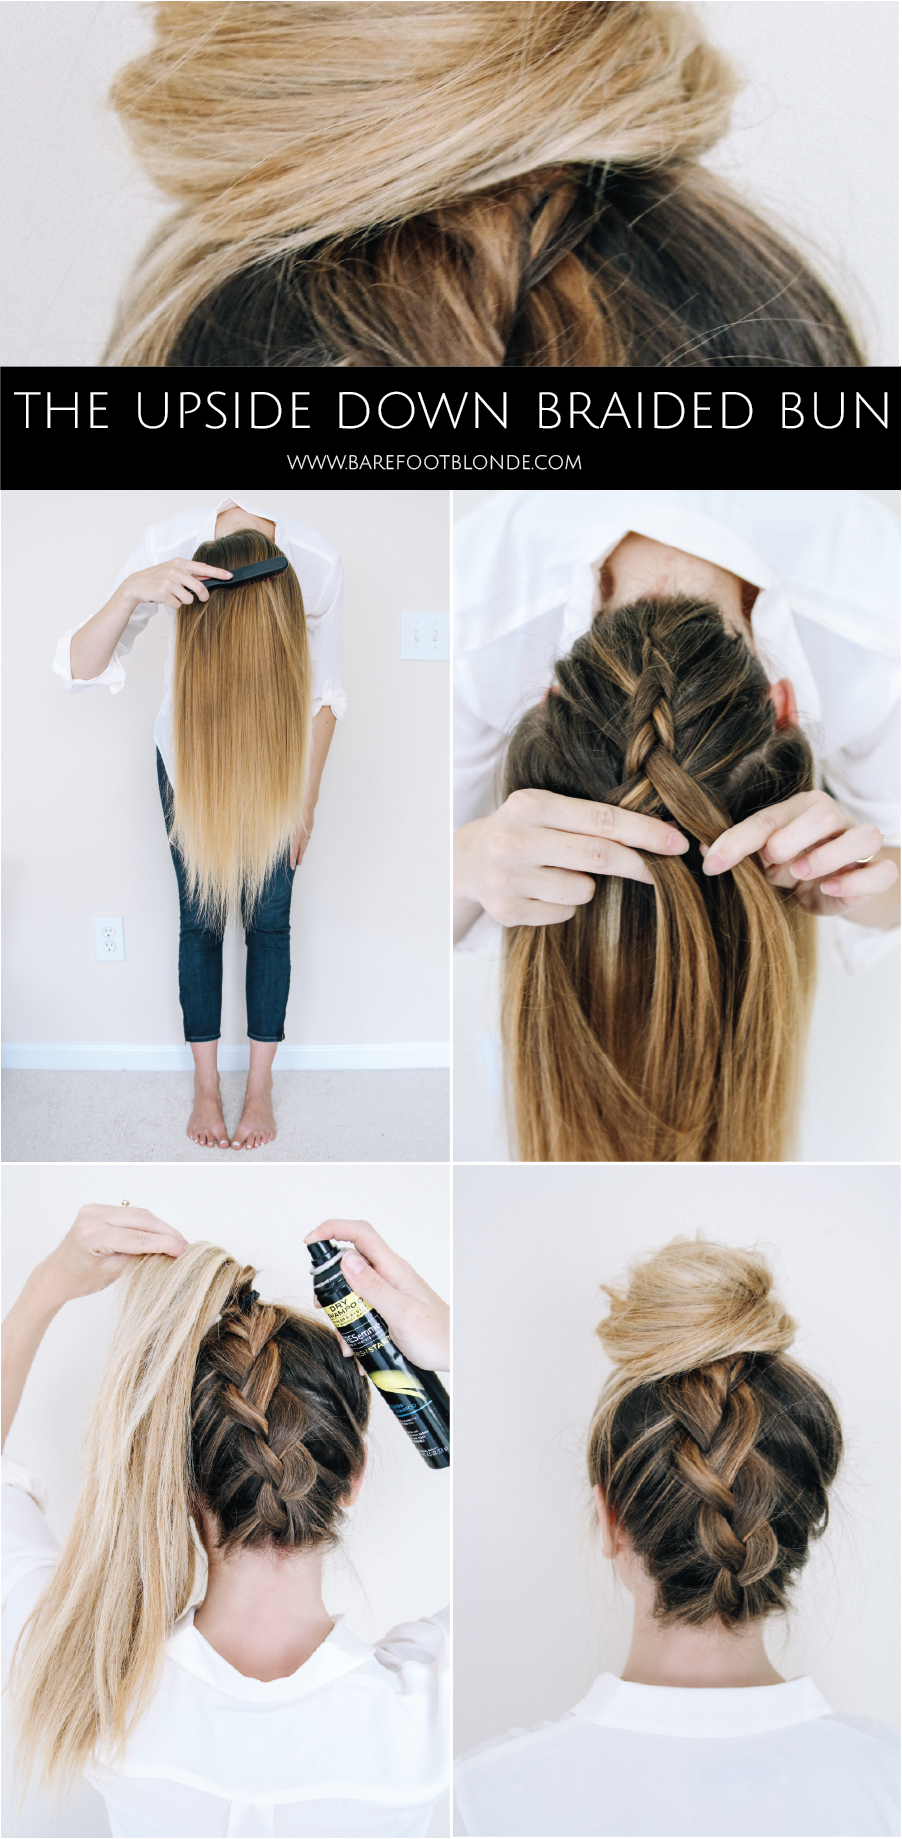 Upside Down Braided Bun | Peinados, Cabello y Trenza